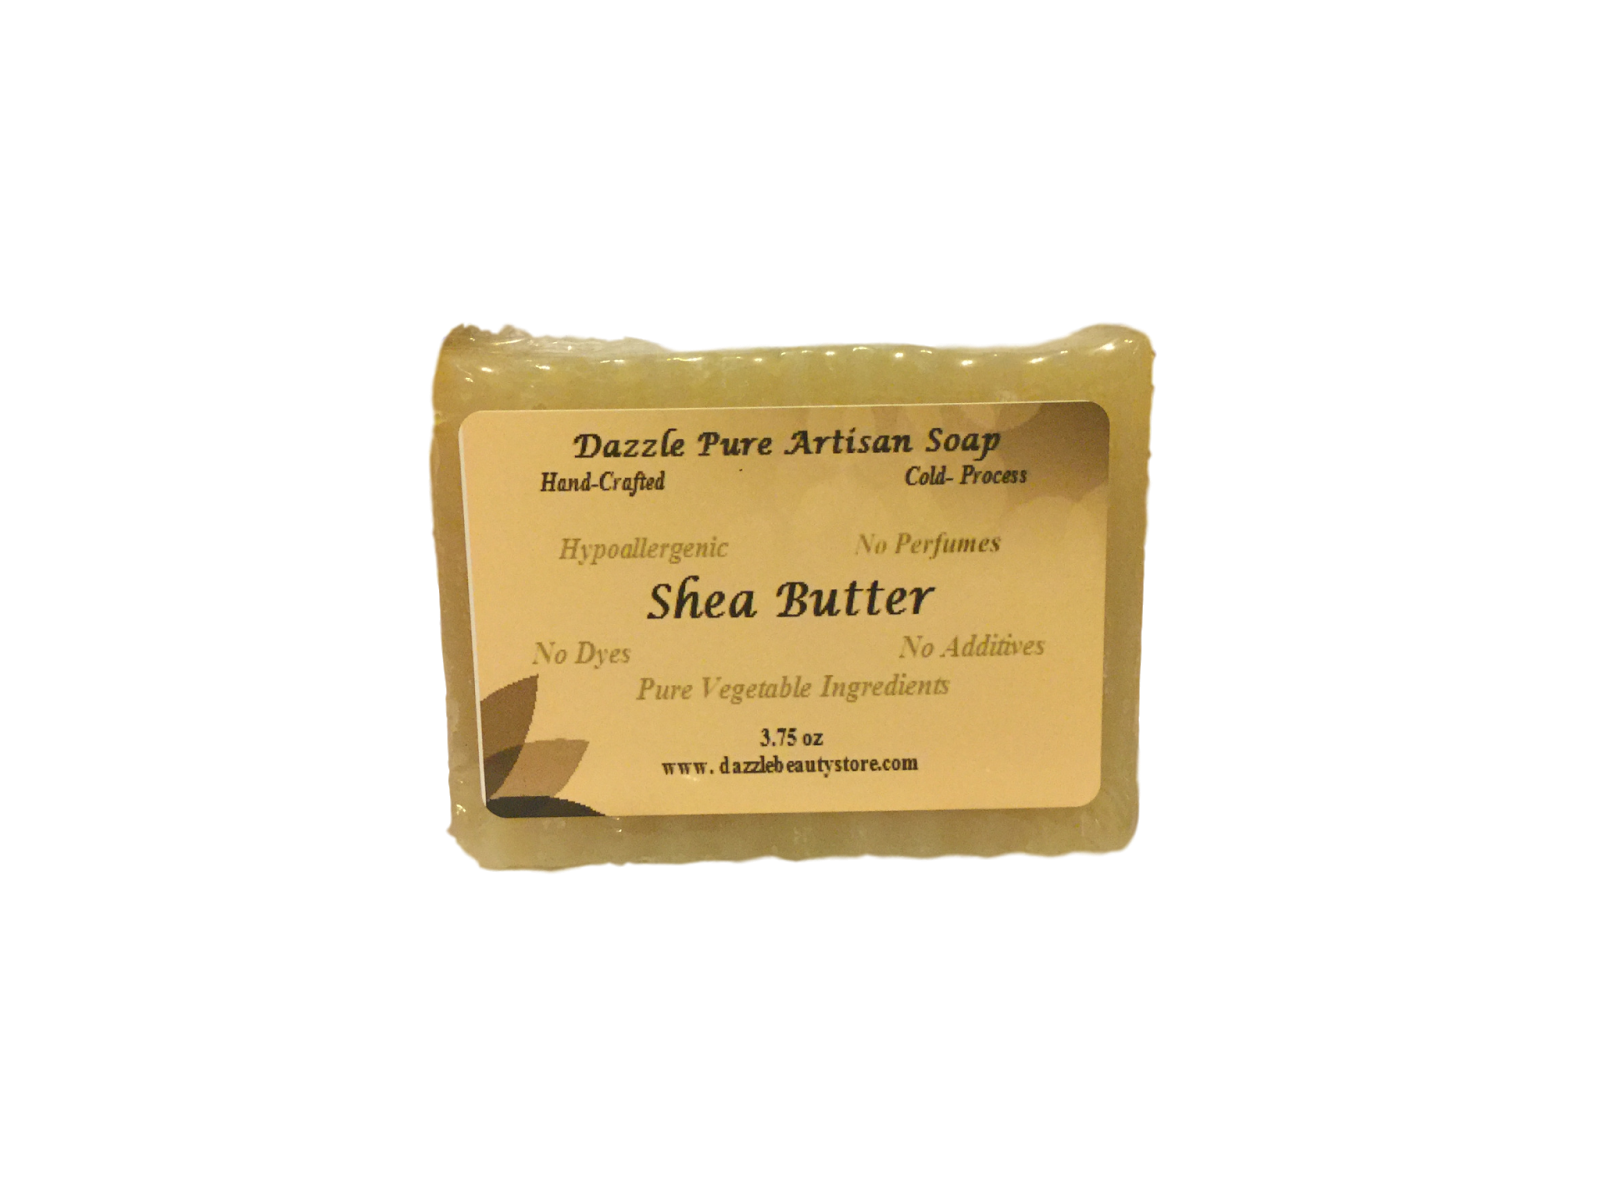 25becc666f5f I received a wonderful Pure Artisan Shea Butter All Natural Soap Bar from  dazzlebeautystore.com in exchange for an honest review. I put this awesome  soap in ...